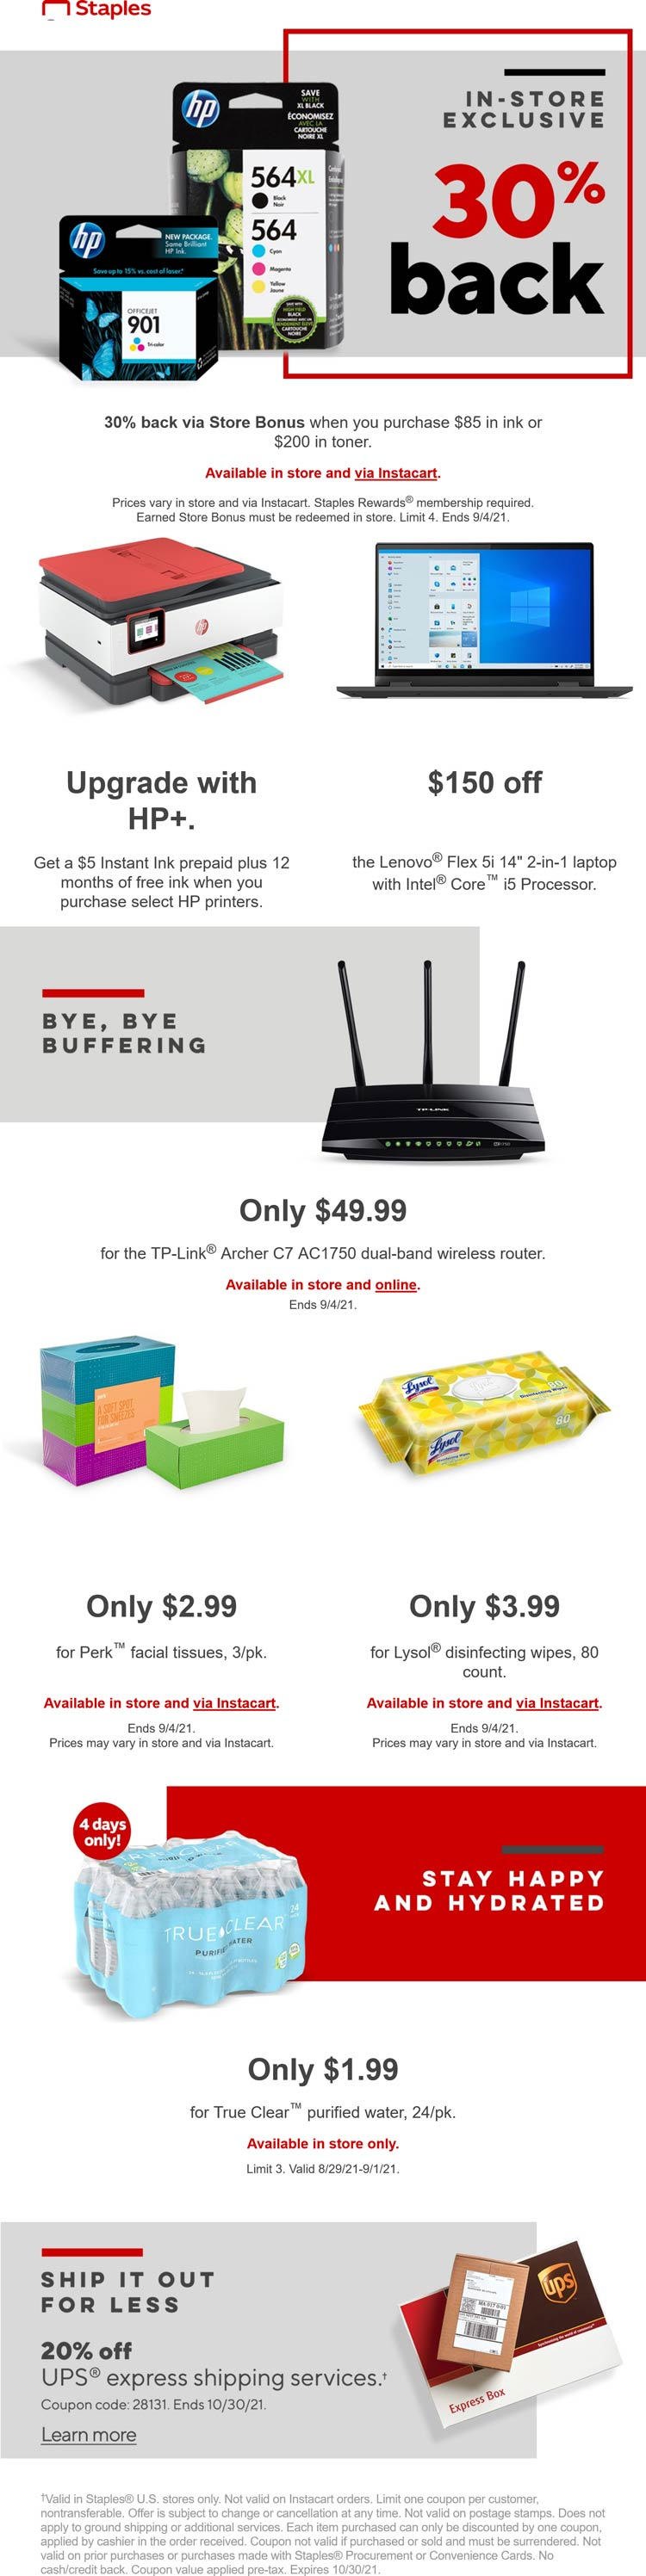 Staples stores Coupon  20% off UPS express shipping at Staples via promo code 28131 #staples